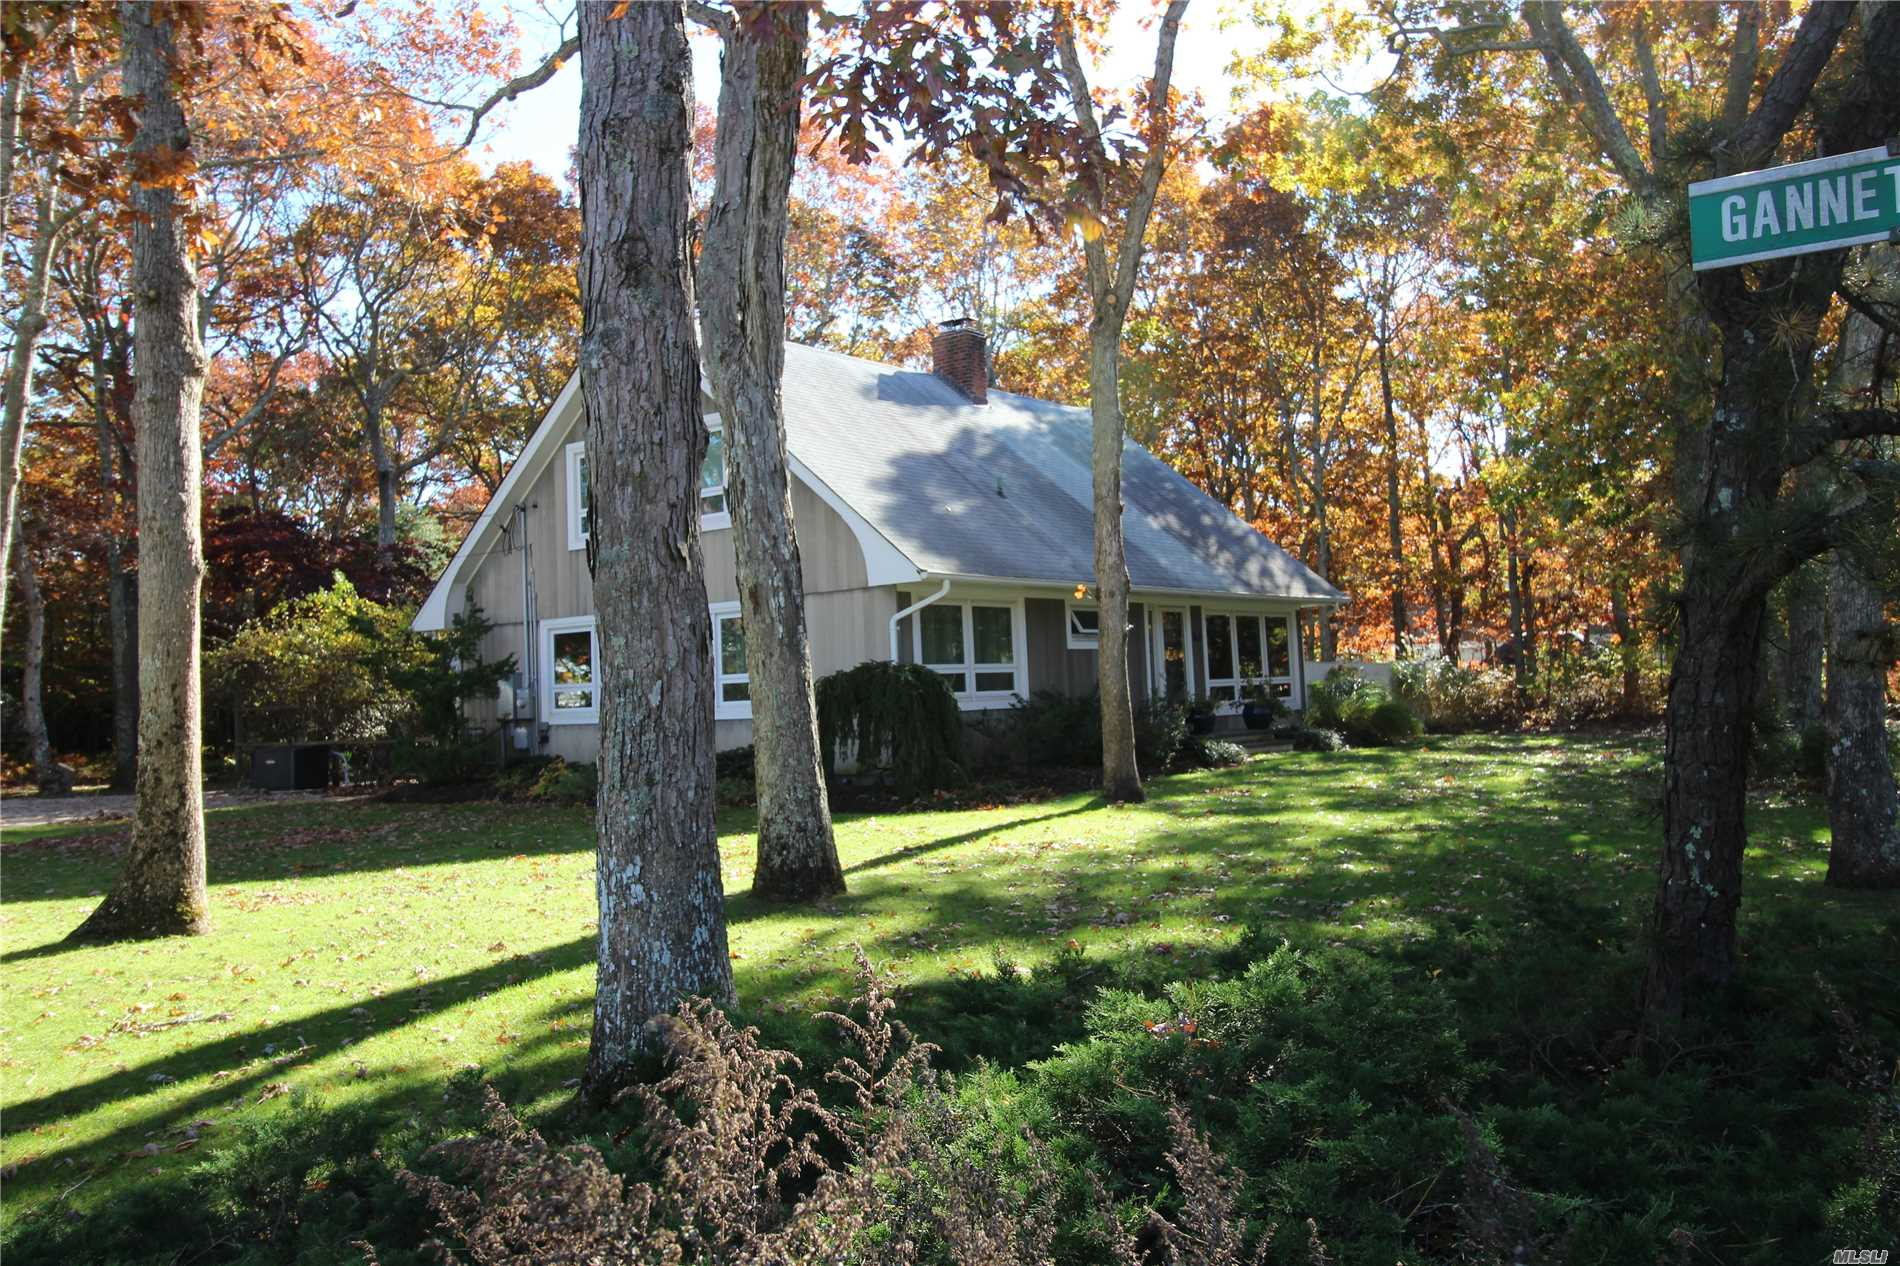 Immaculate Cape Cod In Private Waterfront Community 3 Blocks To Beach. Home Features Living Room With Fireplace, Hardwood Floors Throughout, Open Dining Room/Living Room Combo. Eat In Kitchen, 2 Bd. 1 Ba. On 1st Floor. Large Cathedrel Ceiling Master Bedroom On 2nd Floor With Private Bath & Kitchinette Area With Sundeck. Also Rear Sundeck, & Hot Tub. Lovely Grounds With Sprinkler System. Whole House Generator. Ceiling Fans. Boat Dock Available.